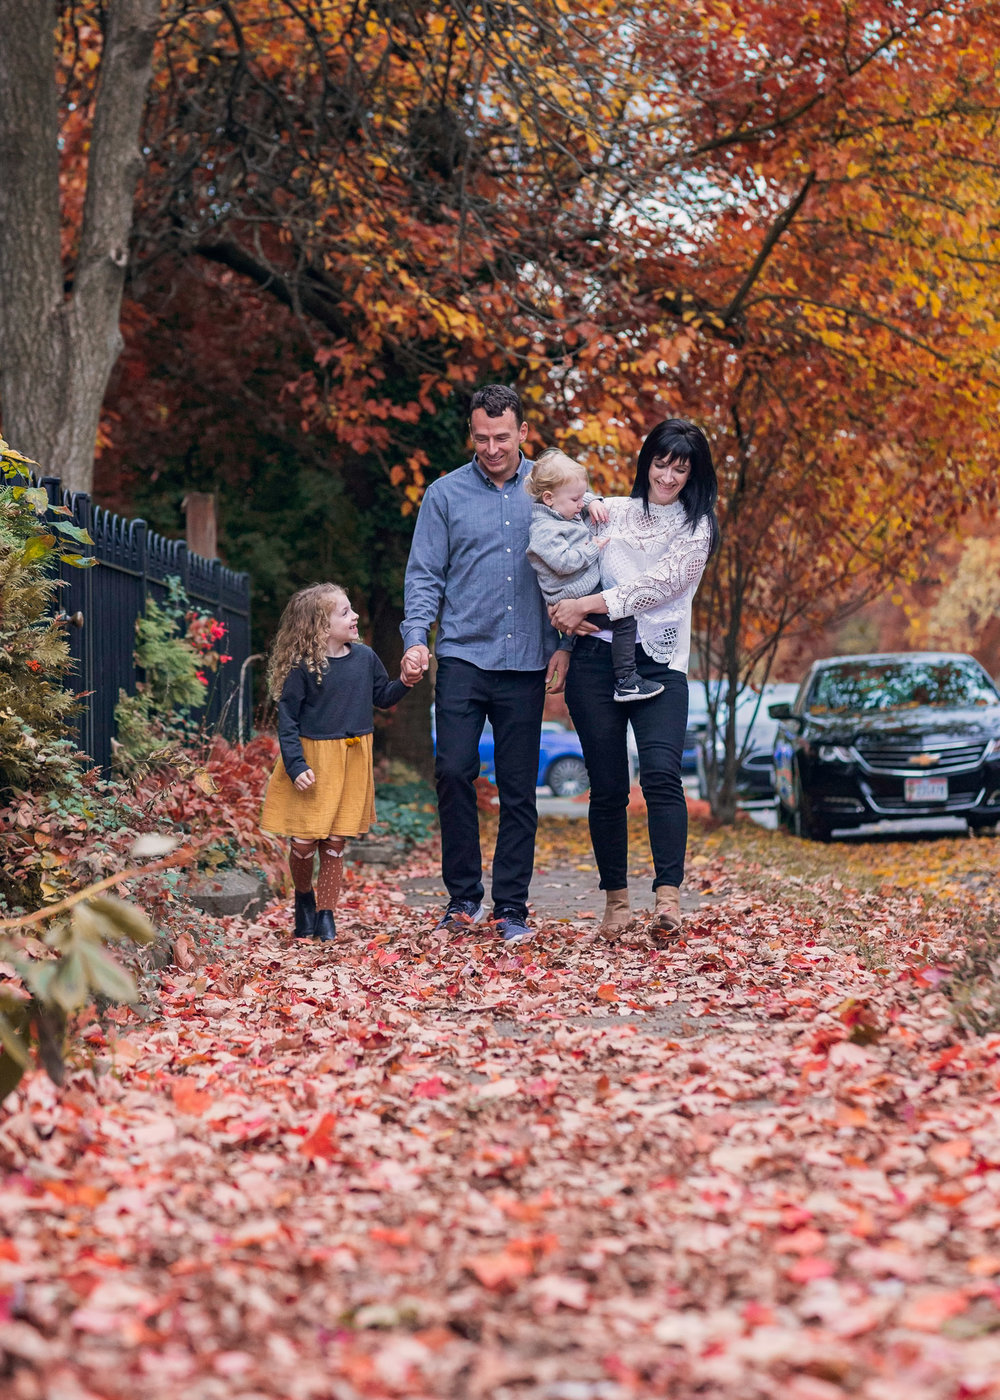 fall-neighborhood-family-portrait-2.jpg